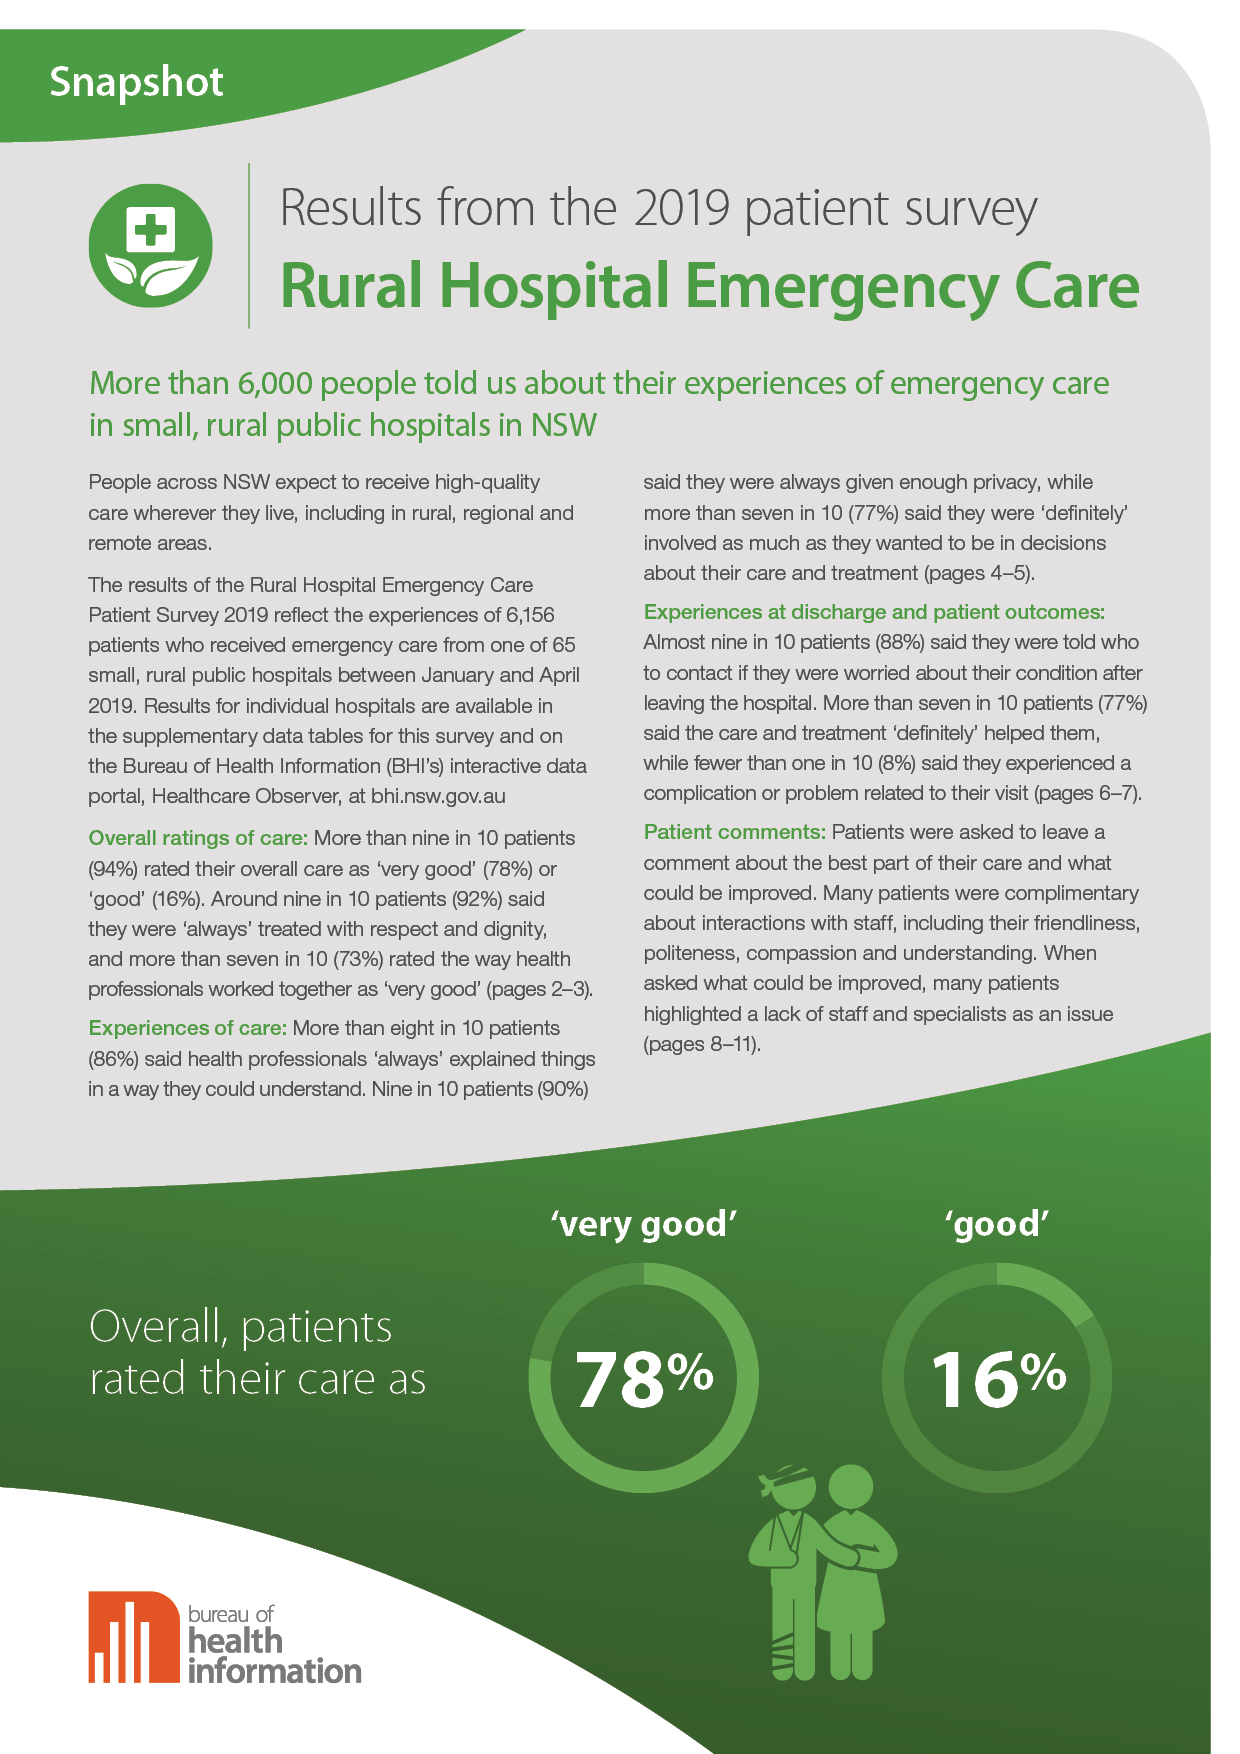 Rural Hospital Emergency Care Patient Survey 2019